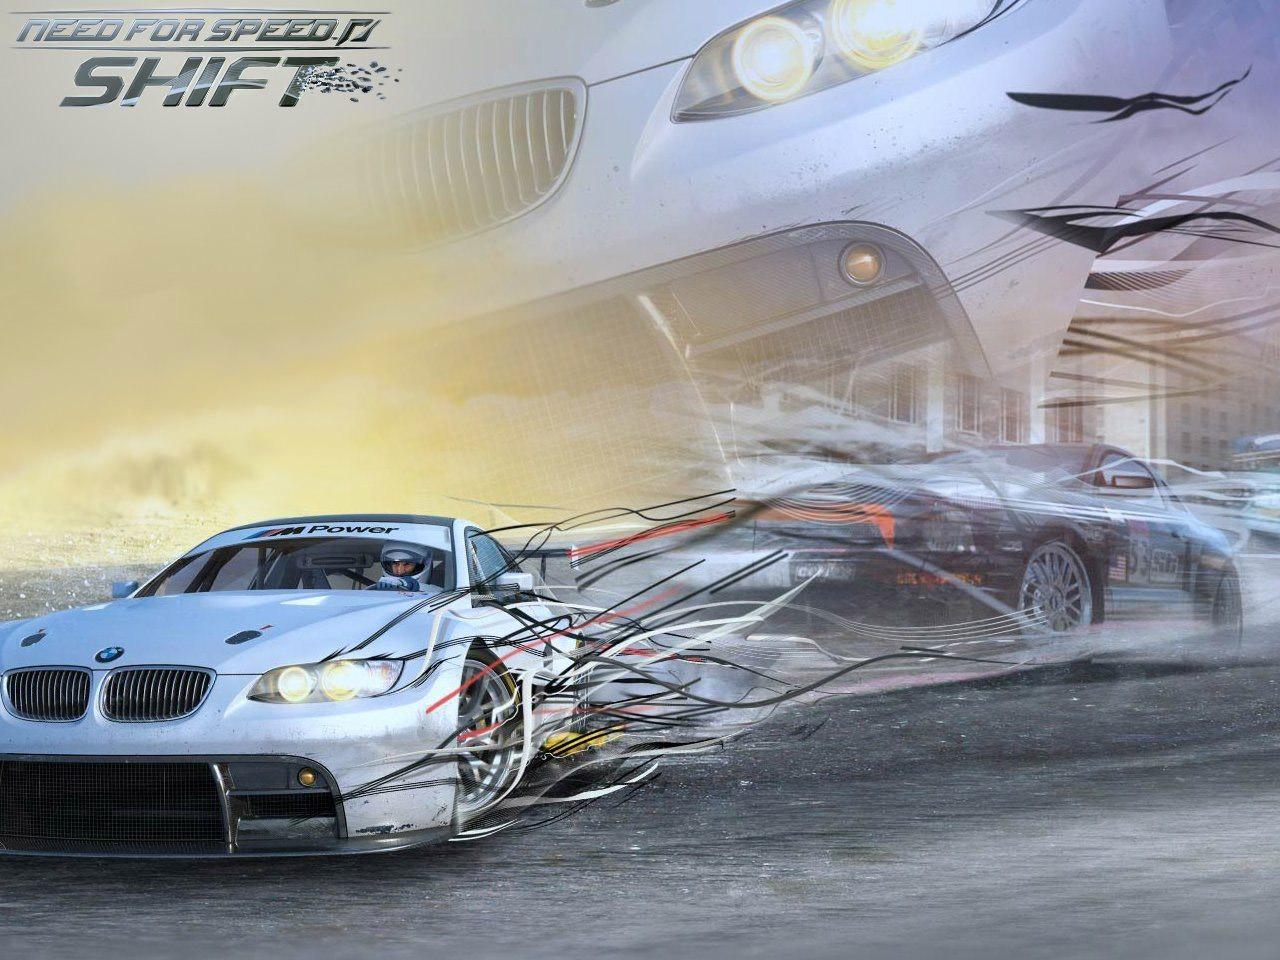 HD Wallpapers Need for Speed Shift